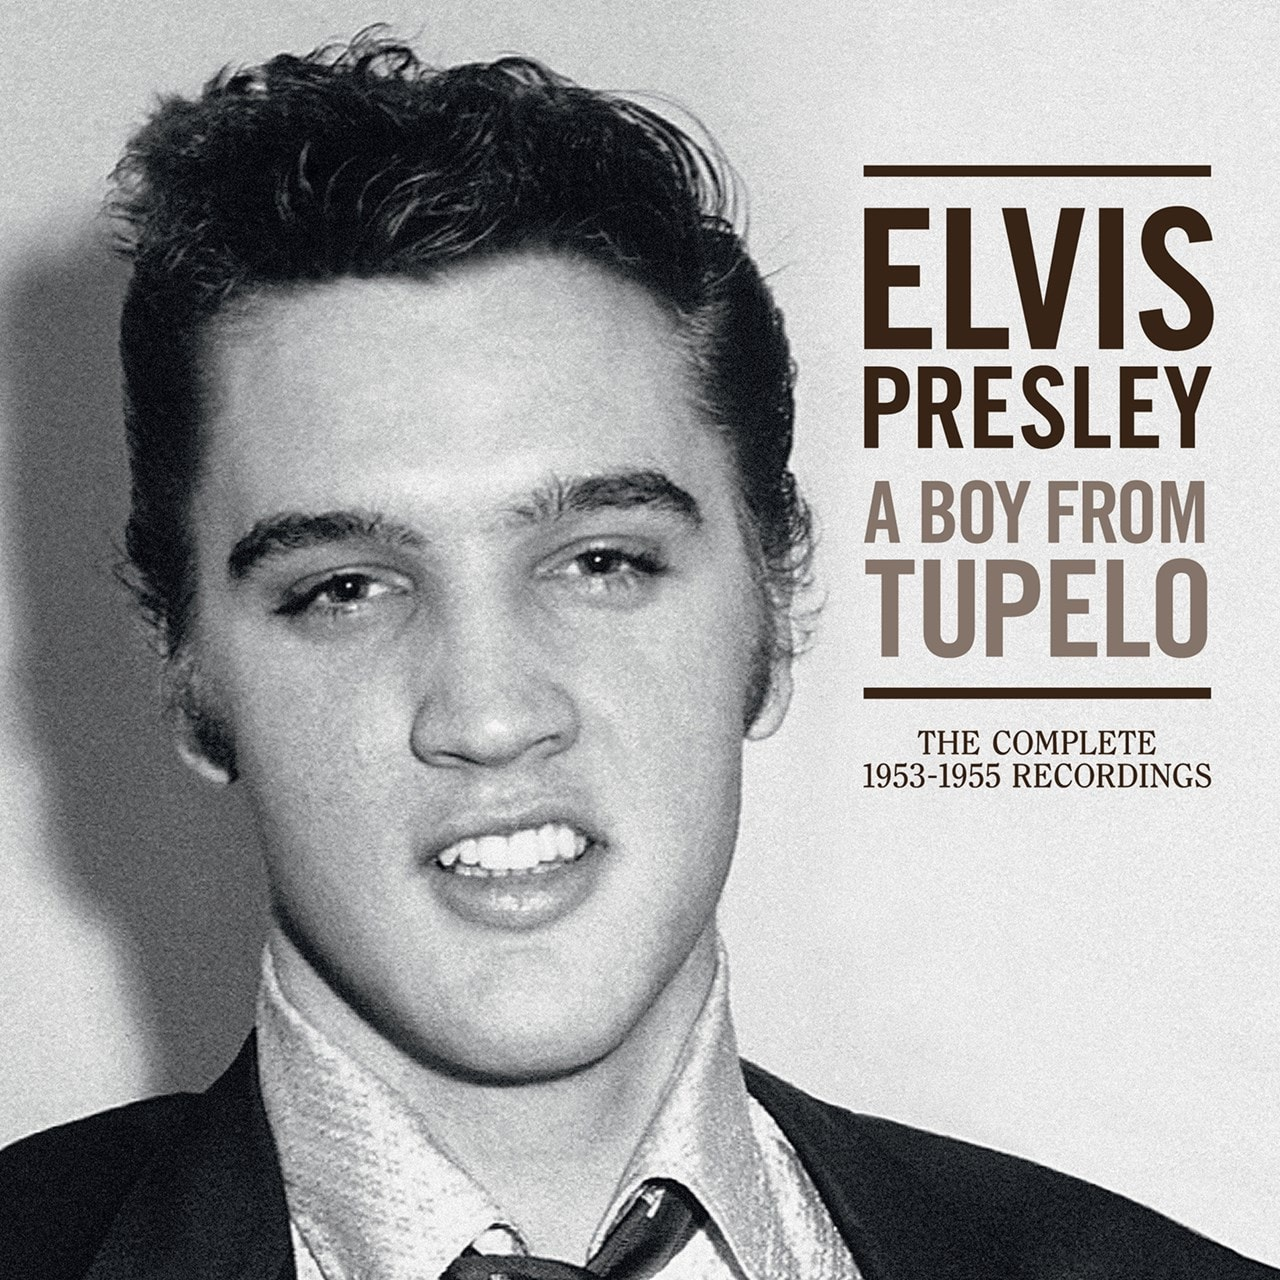 A Boy from Tupelo: The Complete 1953-1955 Recordings - 1